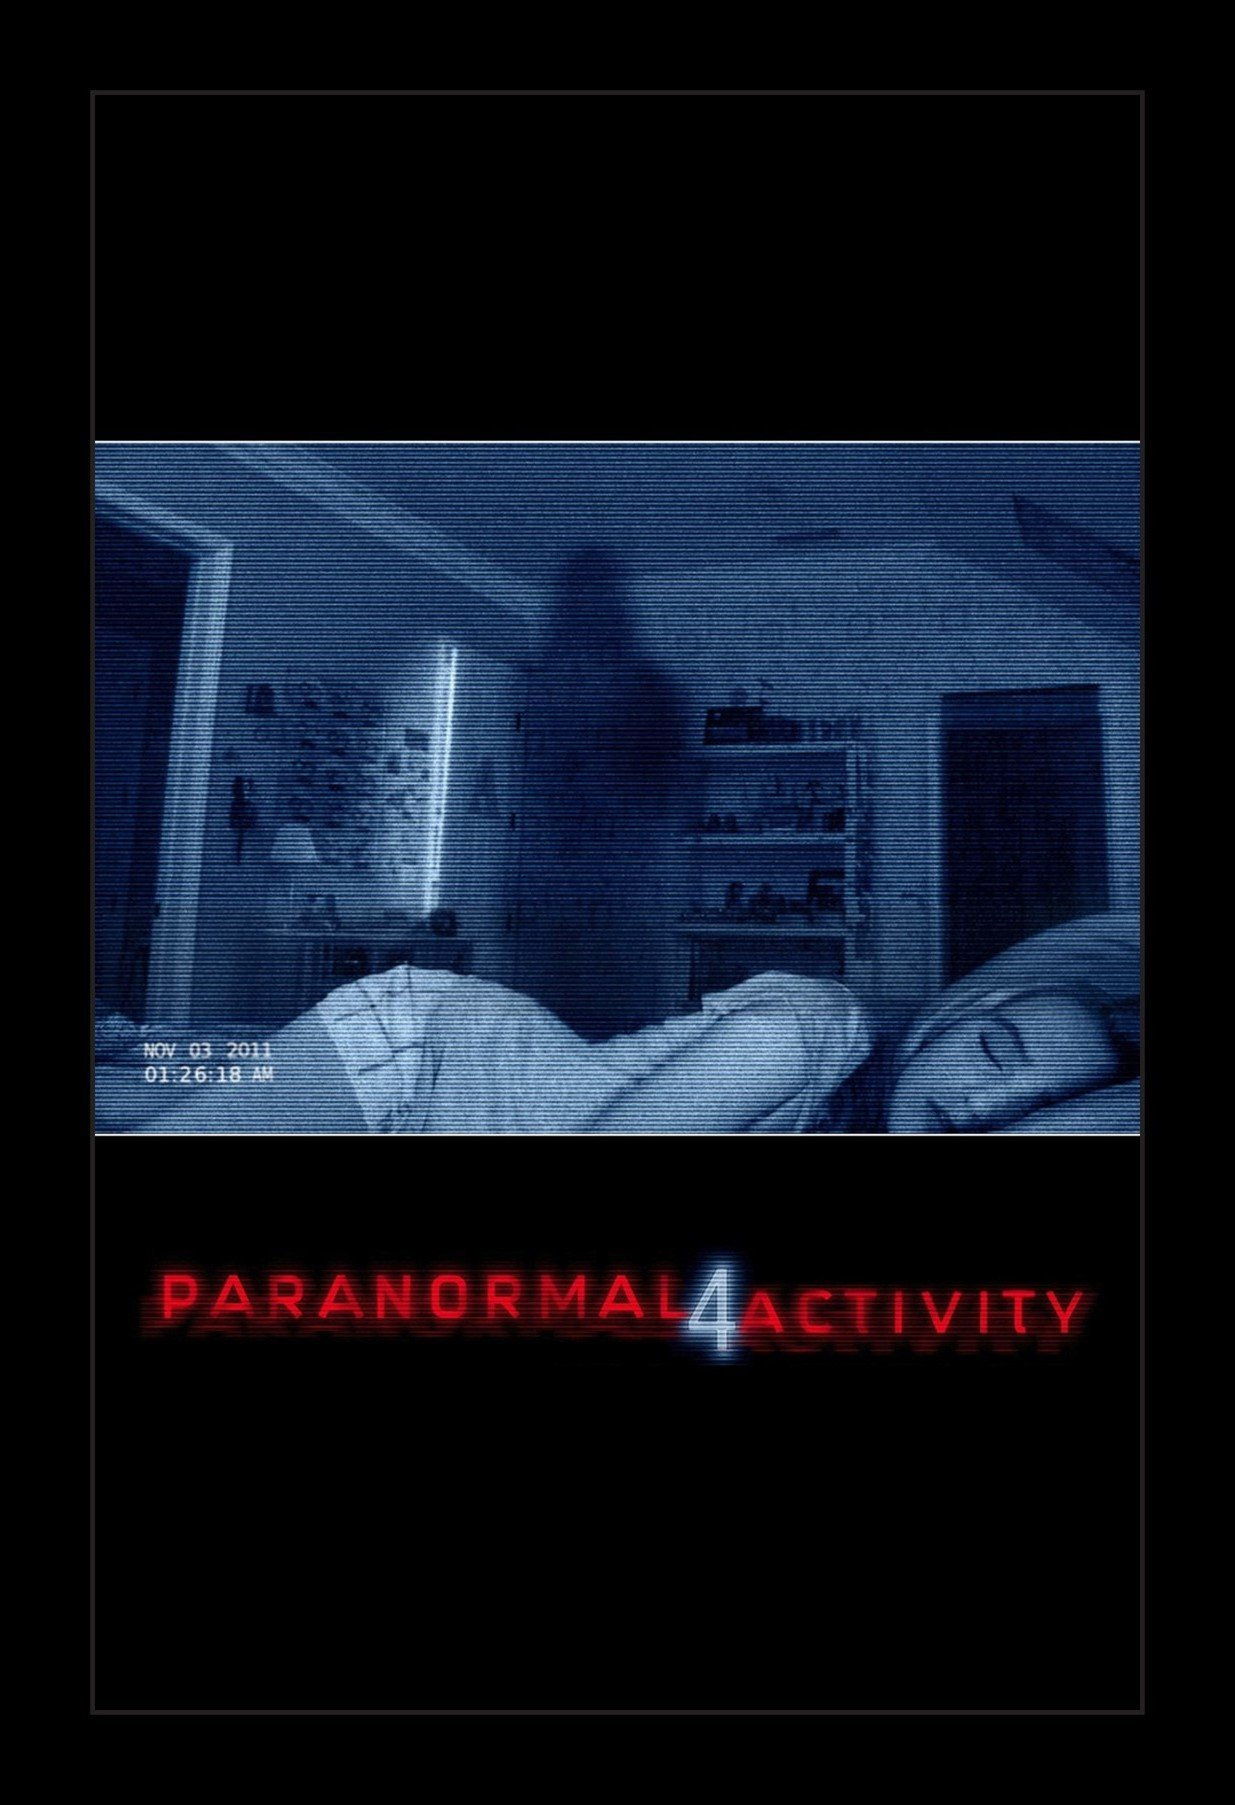 Paranormal Activity 4 - 11x17 Framed Movie Poster by Wallspace